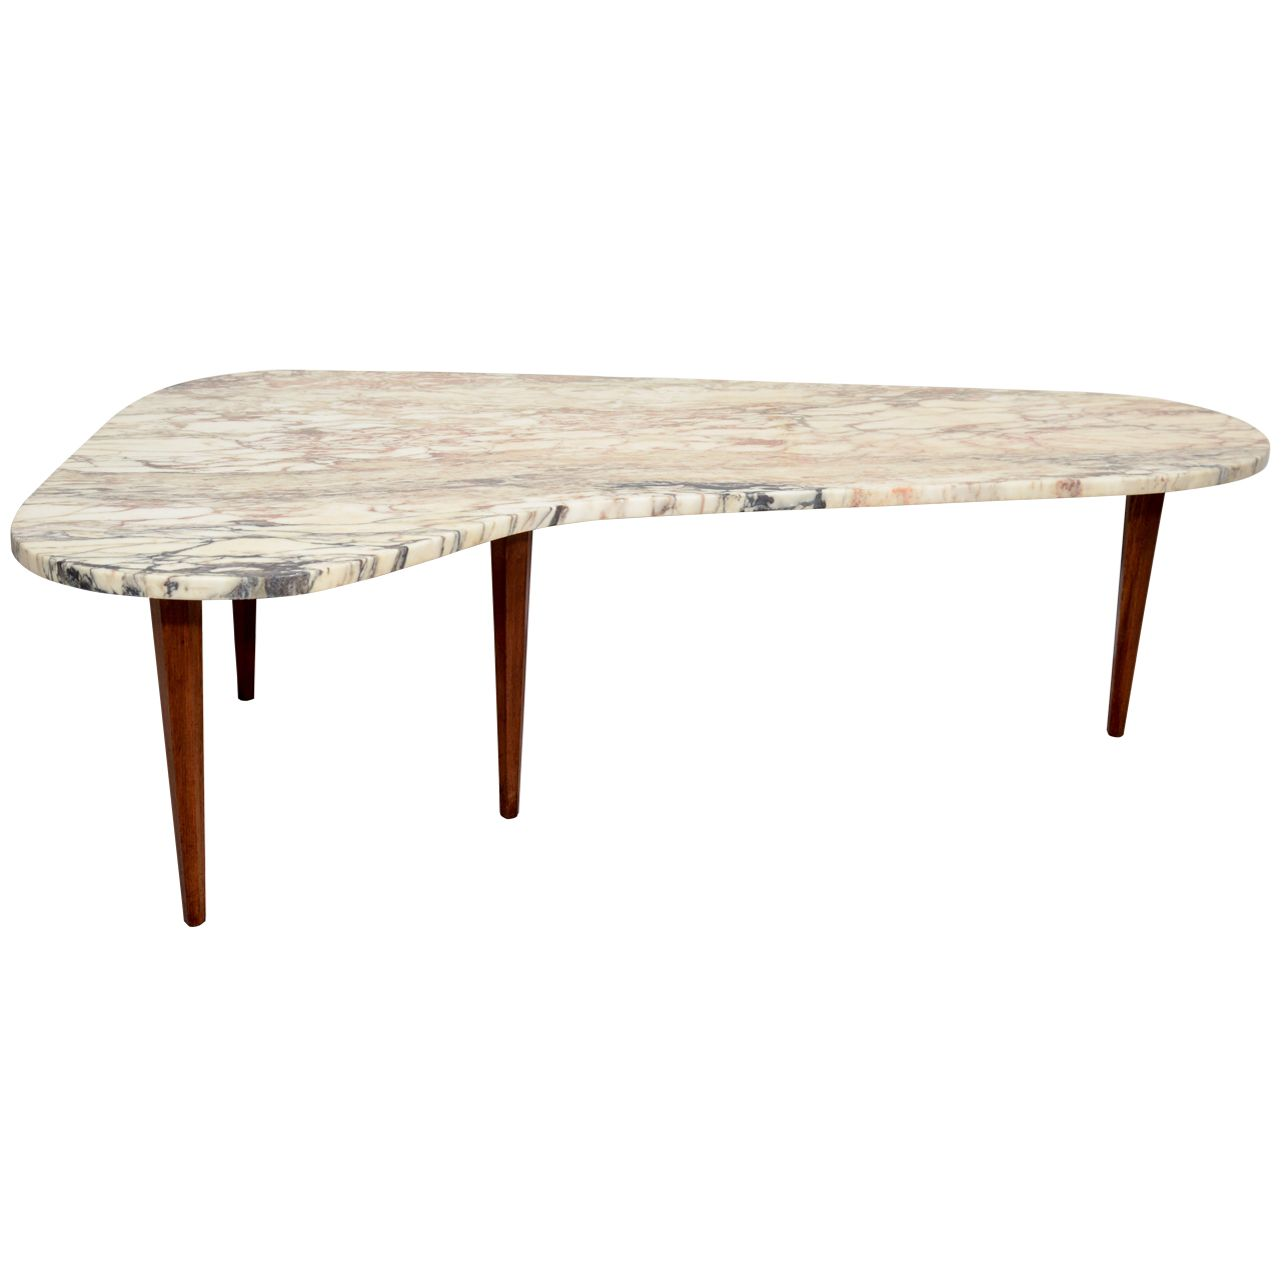 Biomorphic Marble Top Coffee Table I Love Marble